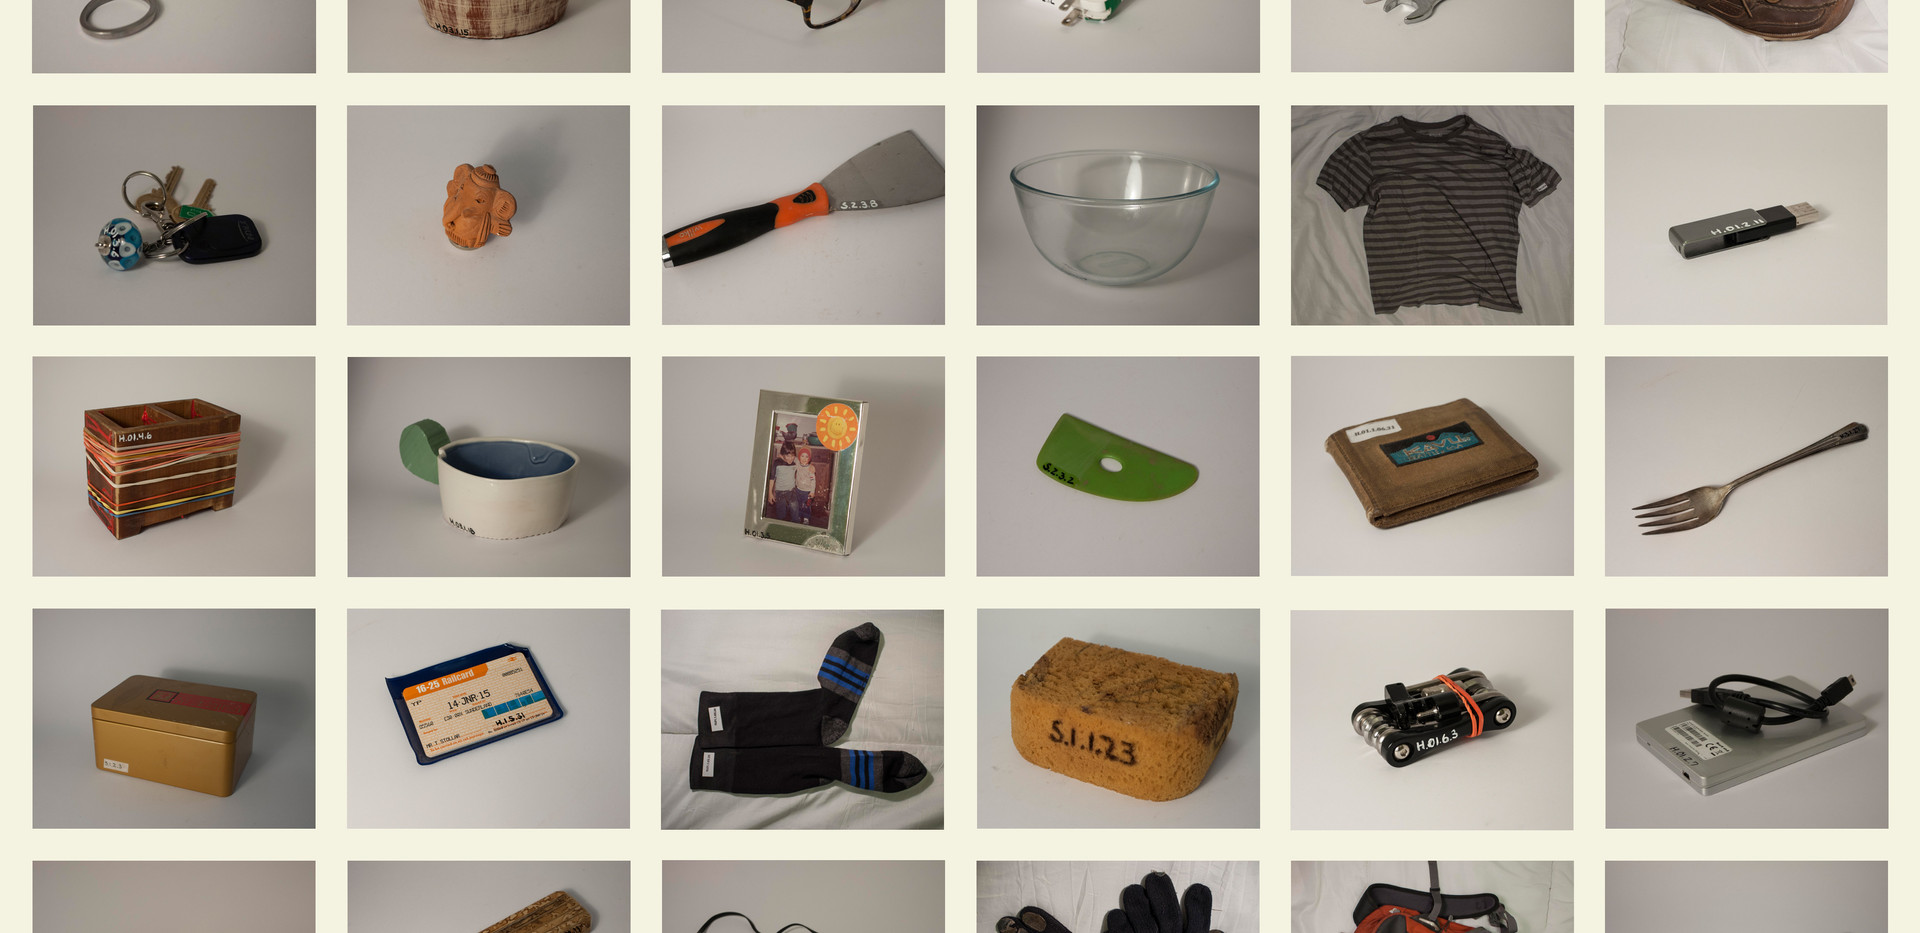 Every Thing I Own (2015)